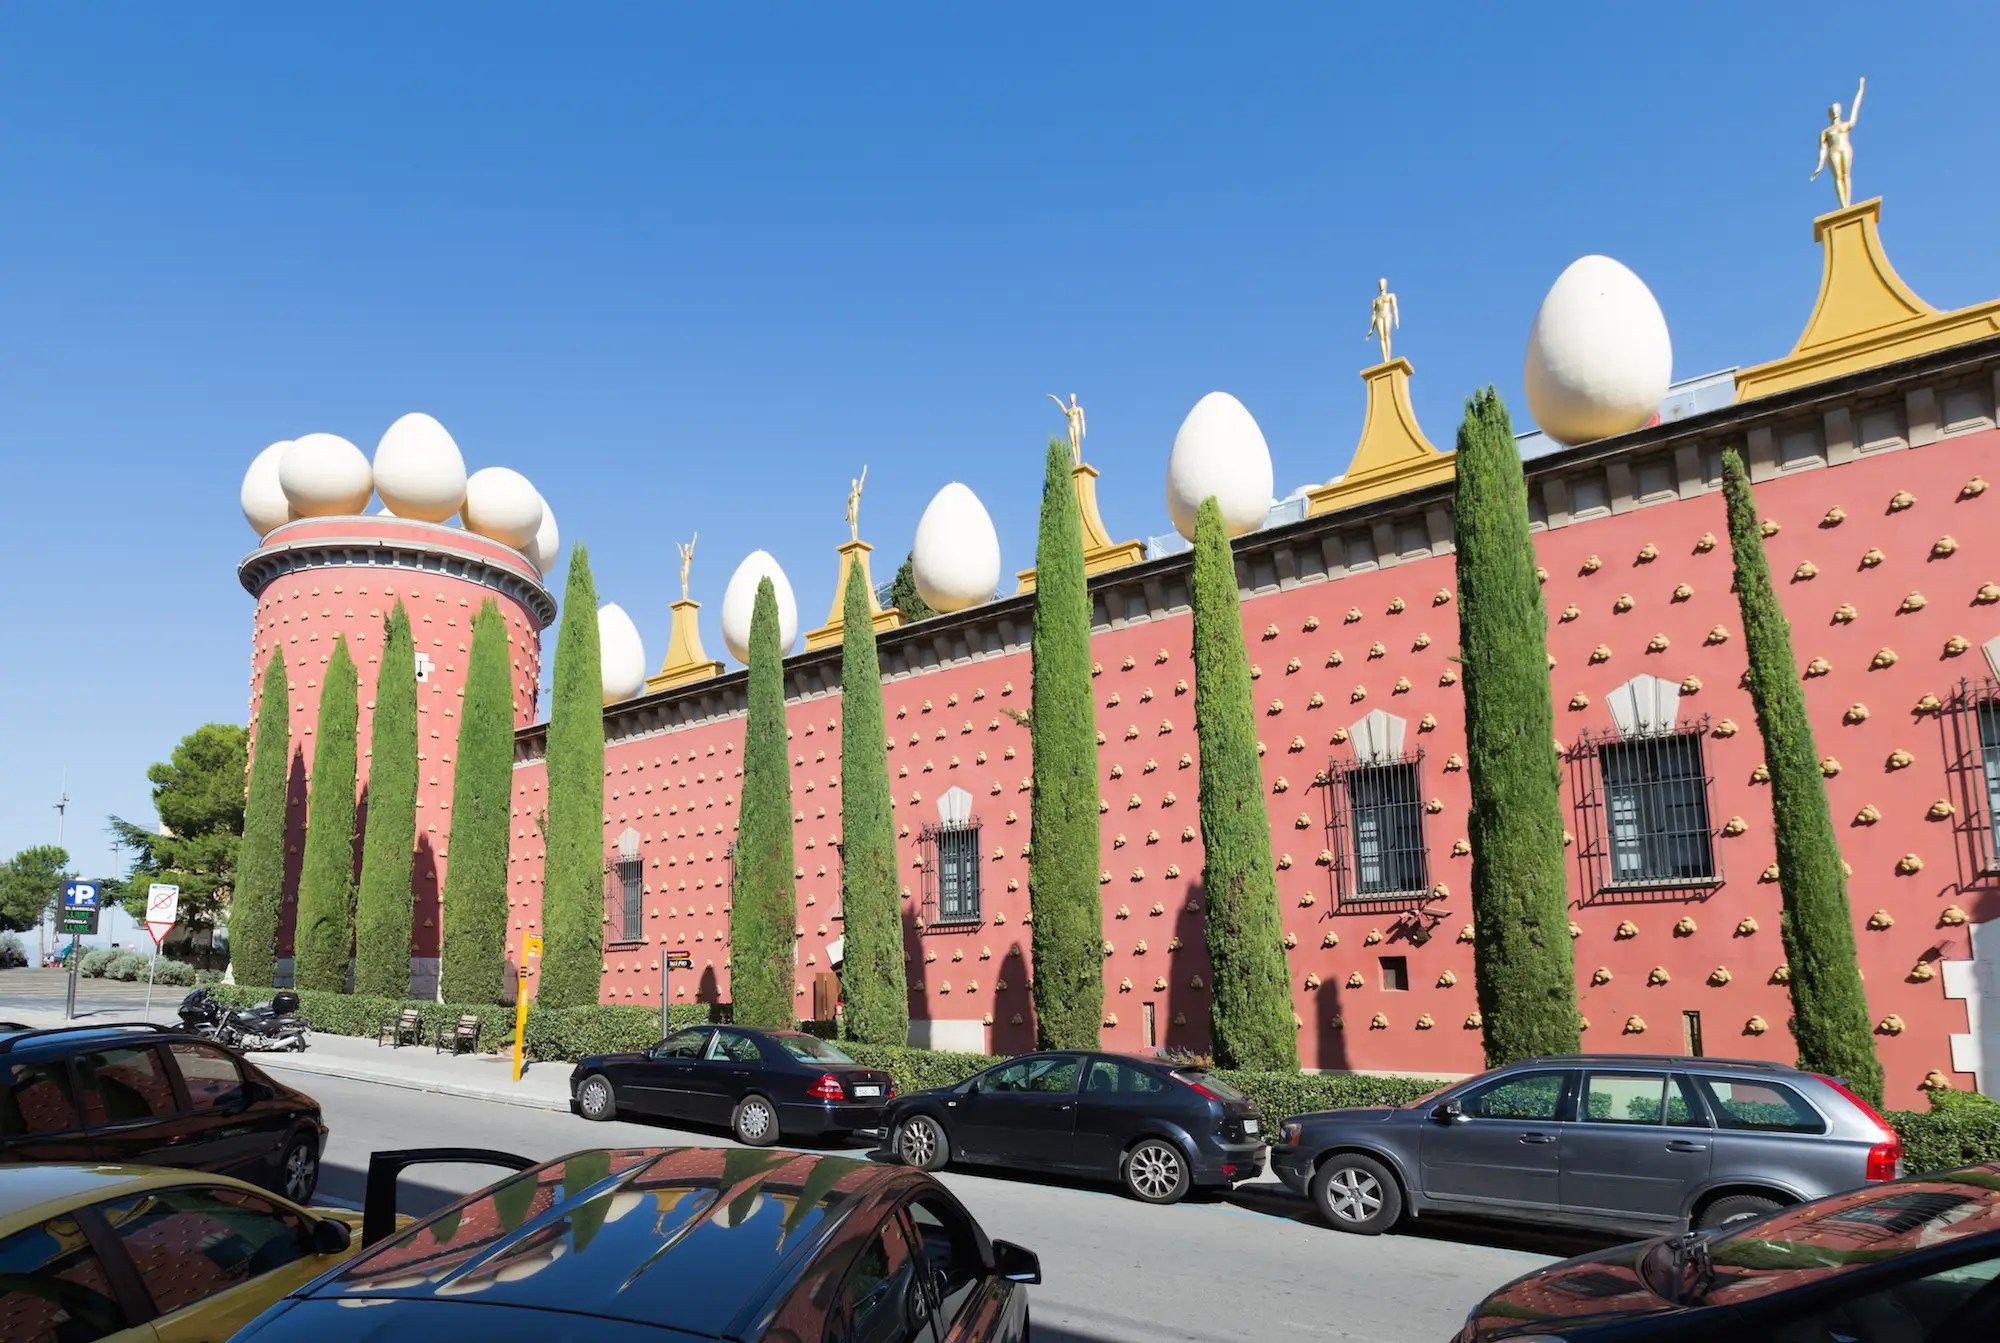 23. The Torre Galatea Figueras in Catalonia, Spain, is a museum for Salvador Dalí.